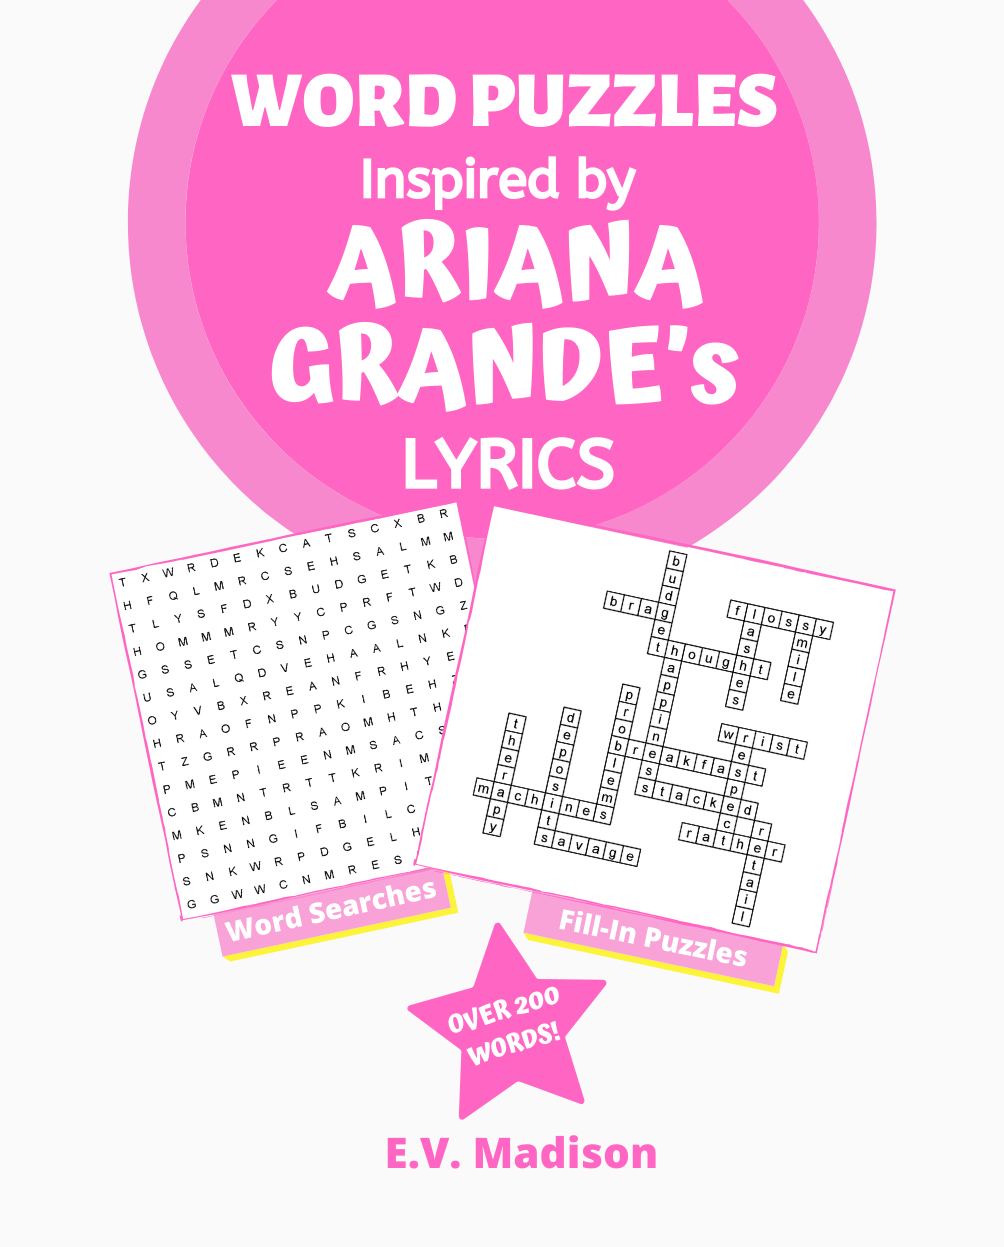 Word Puzzles Inspired by ARIANA GRANDE's Lyrics